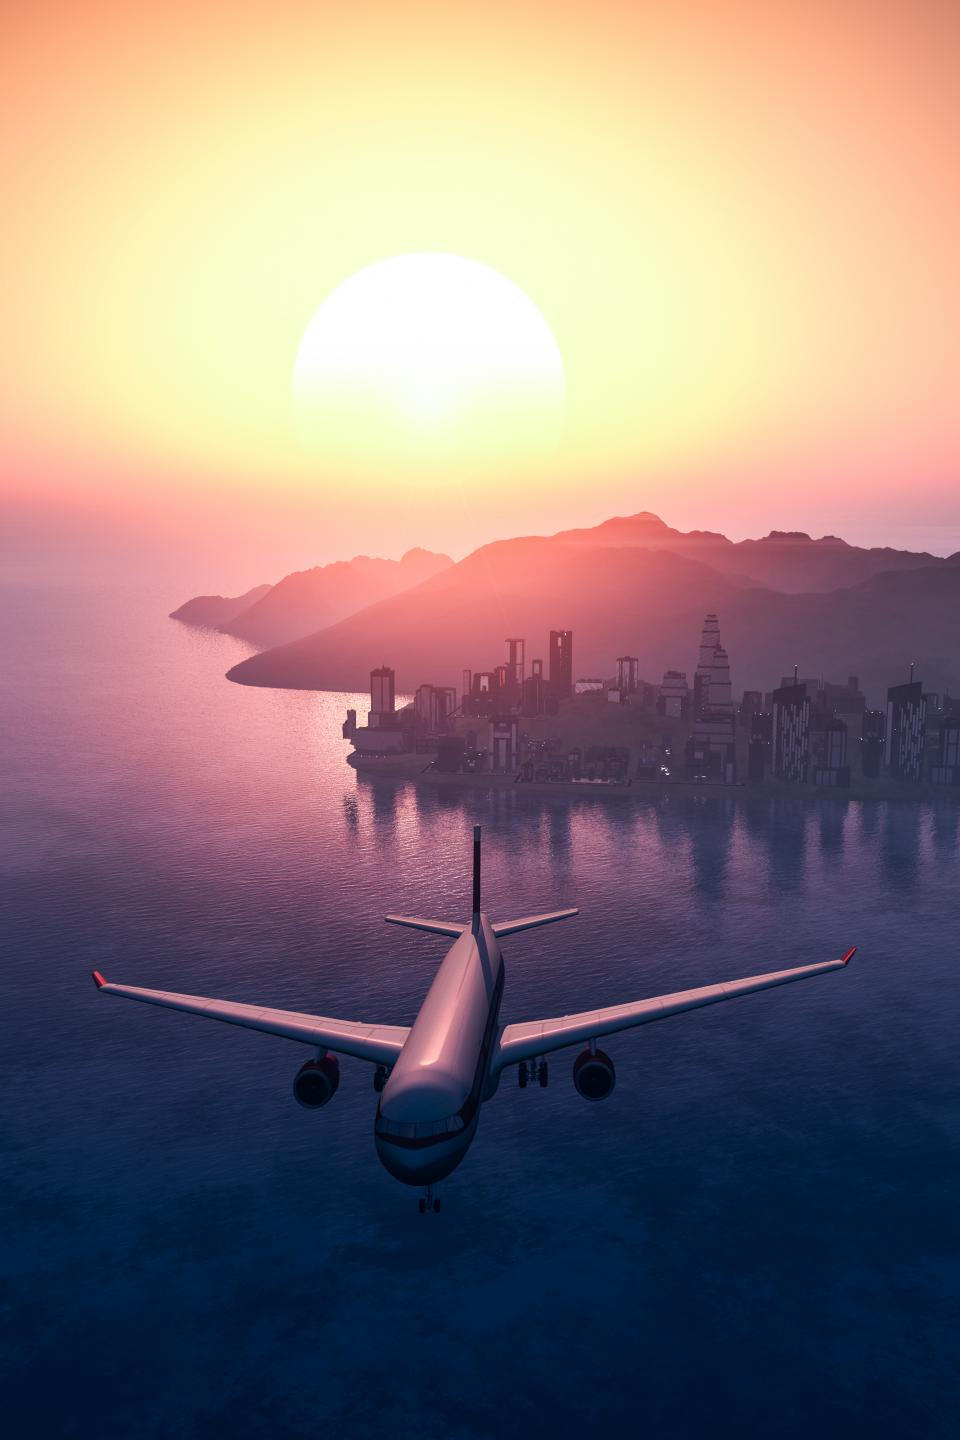 airplane, travel, adventure, plane, vacation, trip, transportation, vehicle, urban, city, sunset, water, ocean, sea, building, establishment